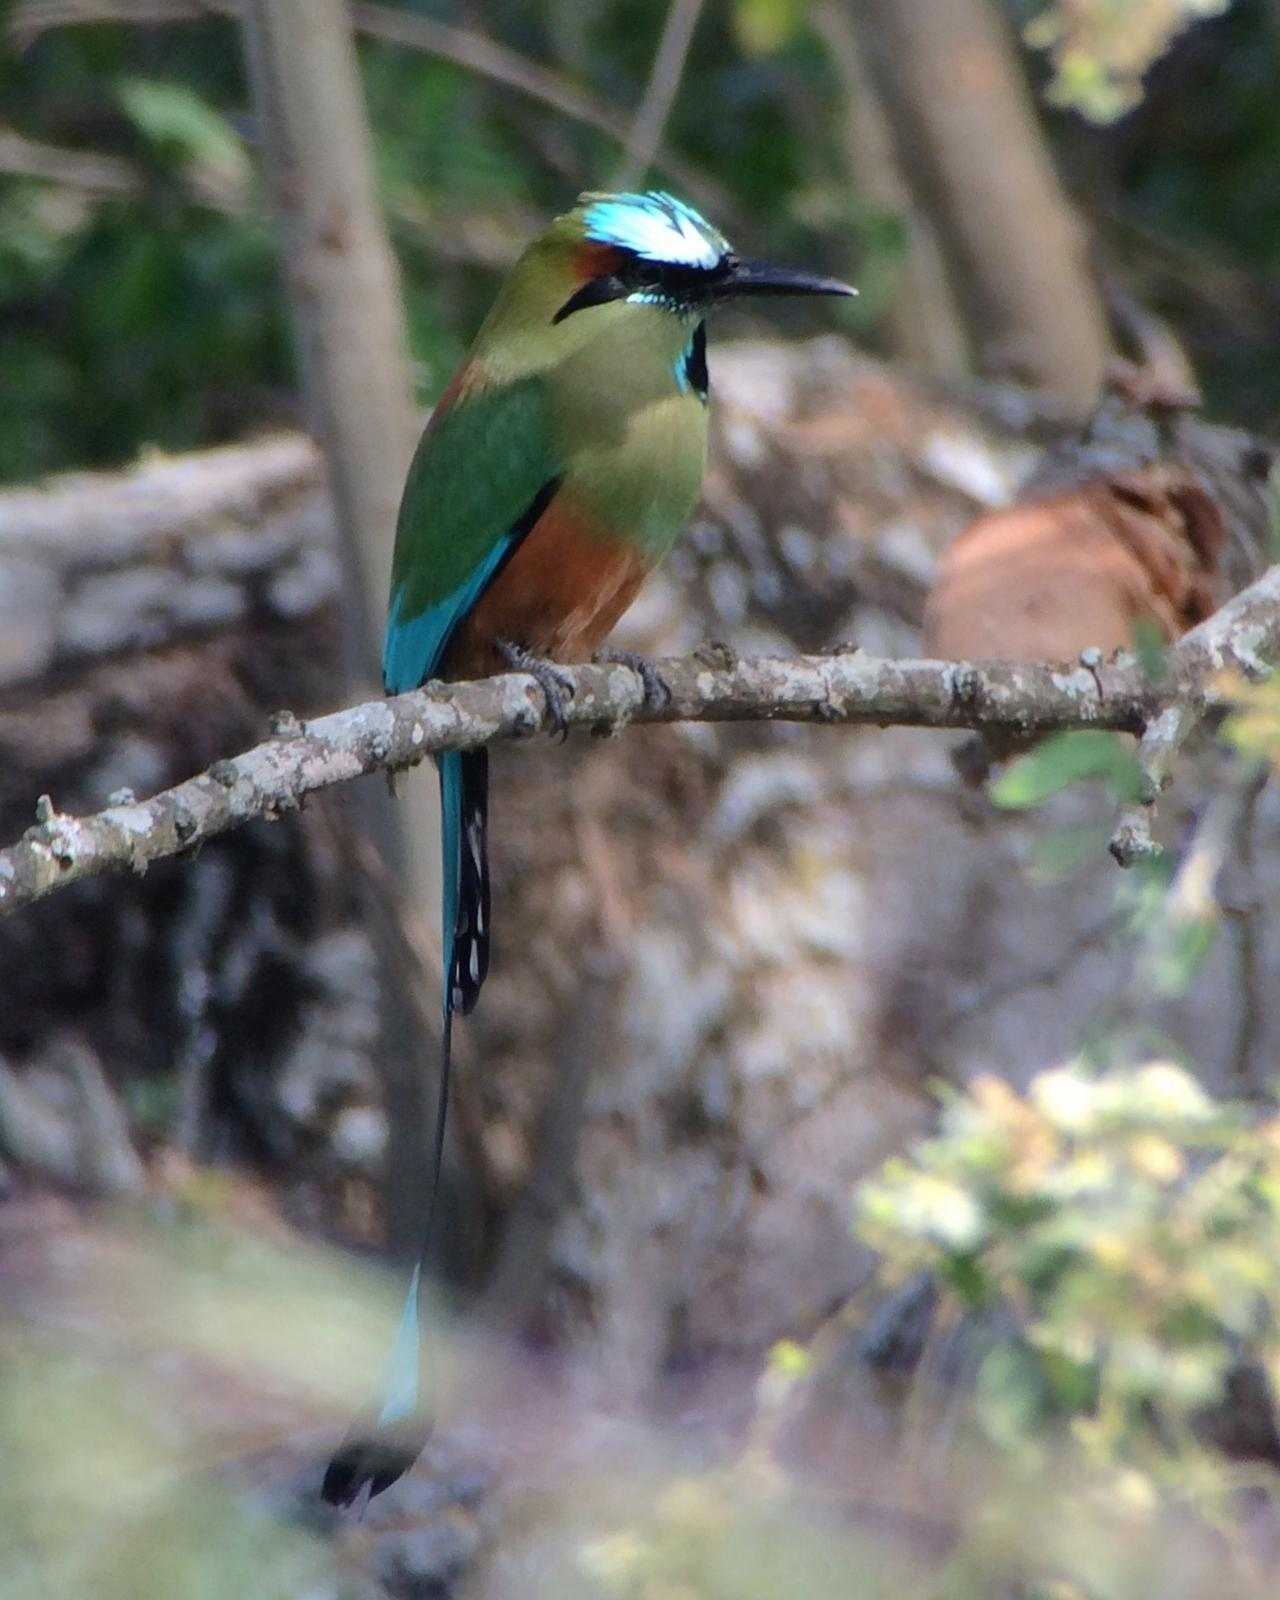 Turquoise-browed Motmot Photo by Drew Weber